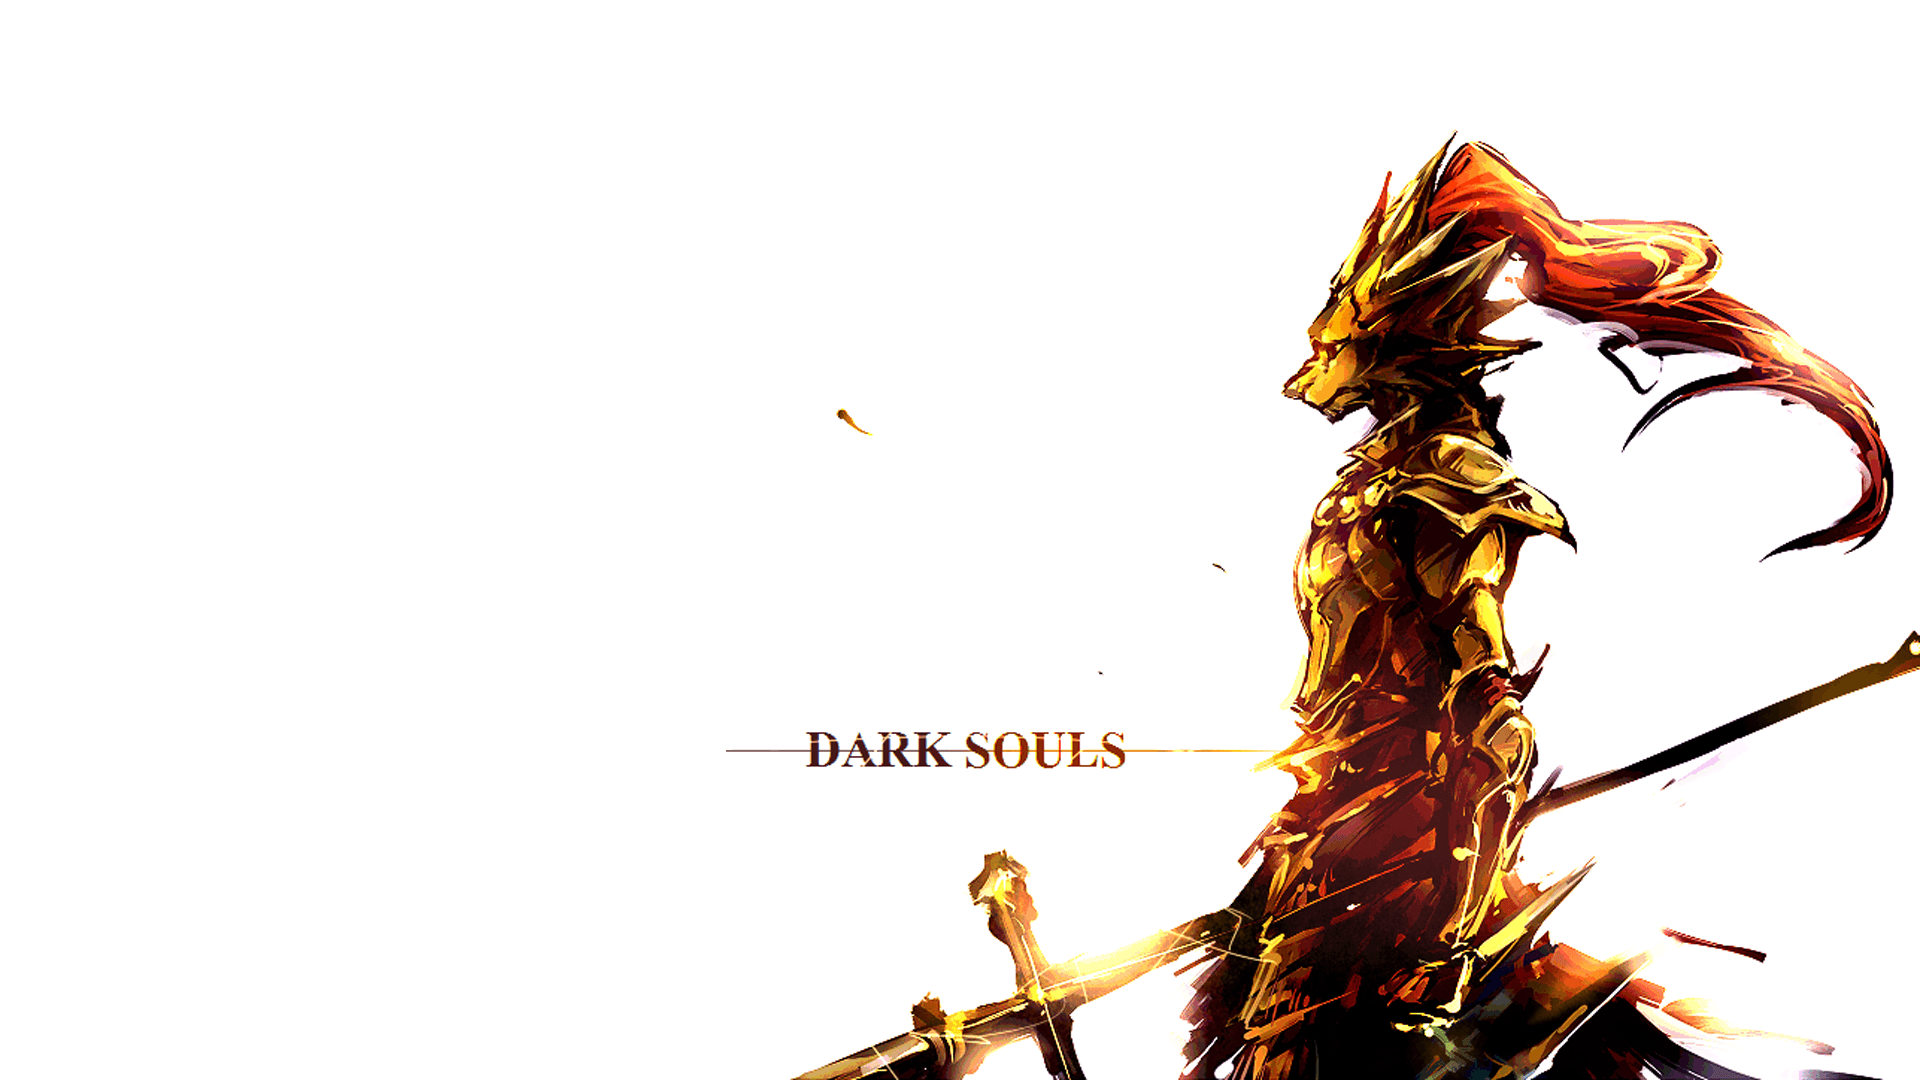 dark souls wallpaper breaking - photo #13